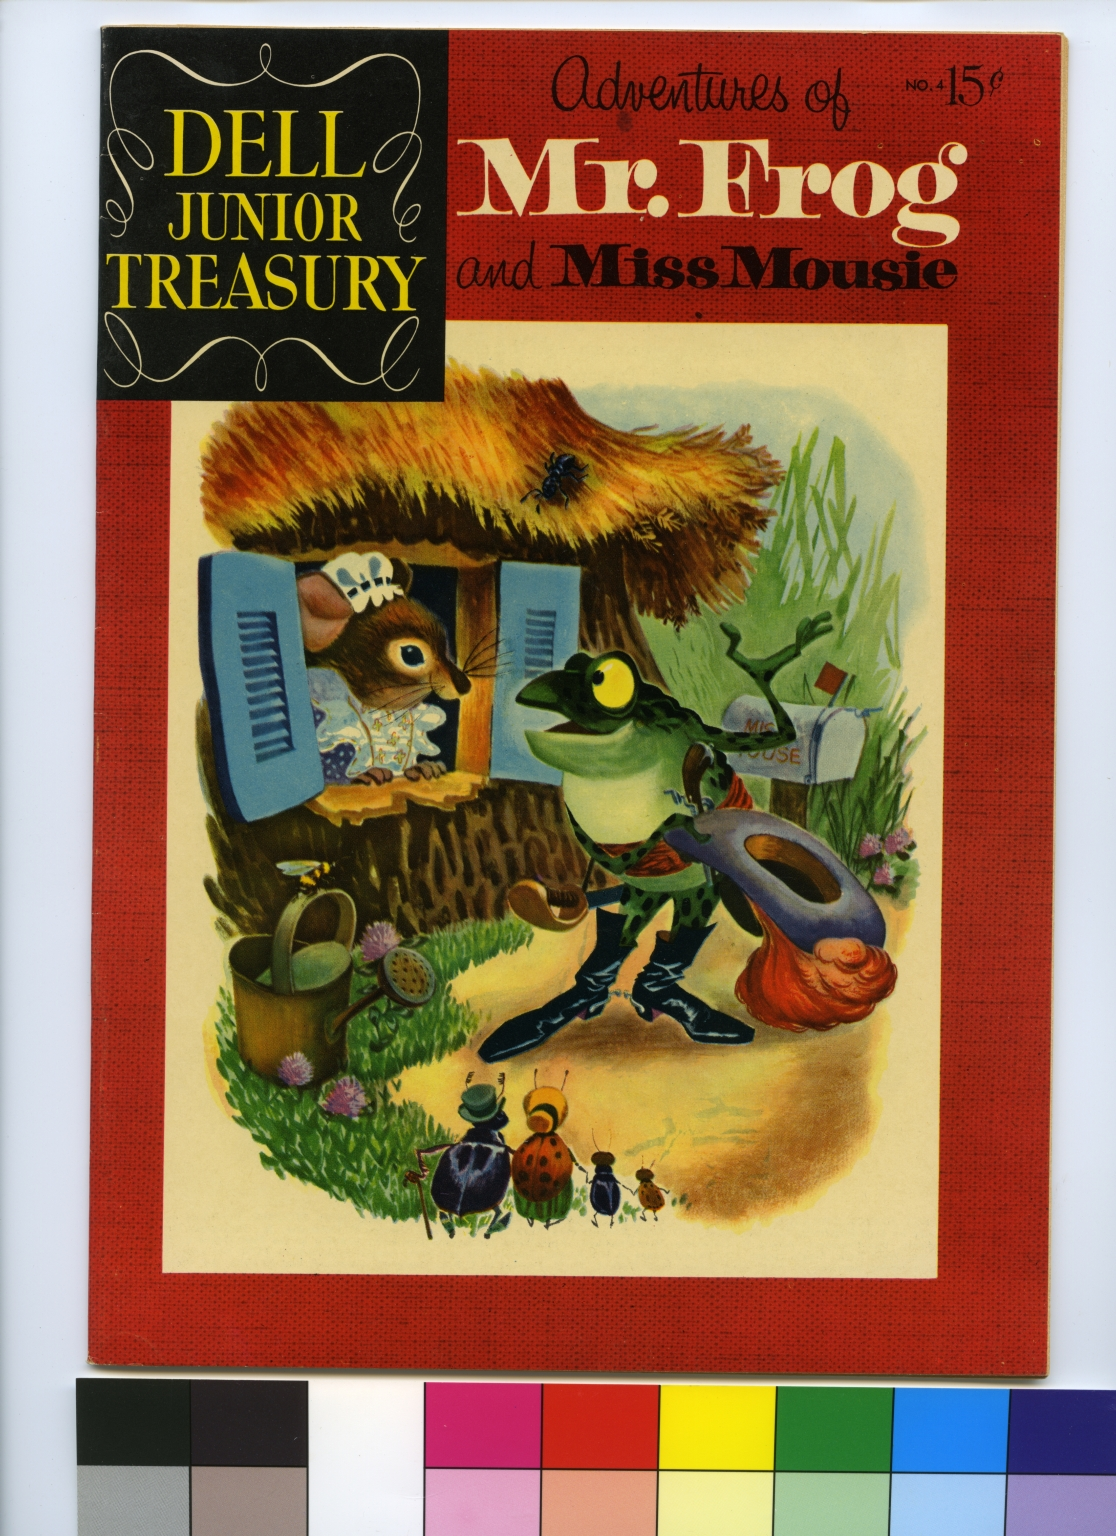 Dell Junior Treasury: Adventures of Mr. Frog and Miss Mousie